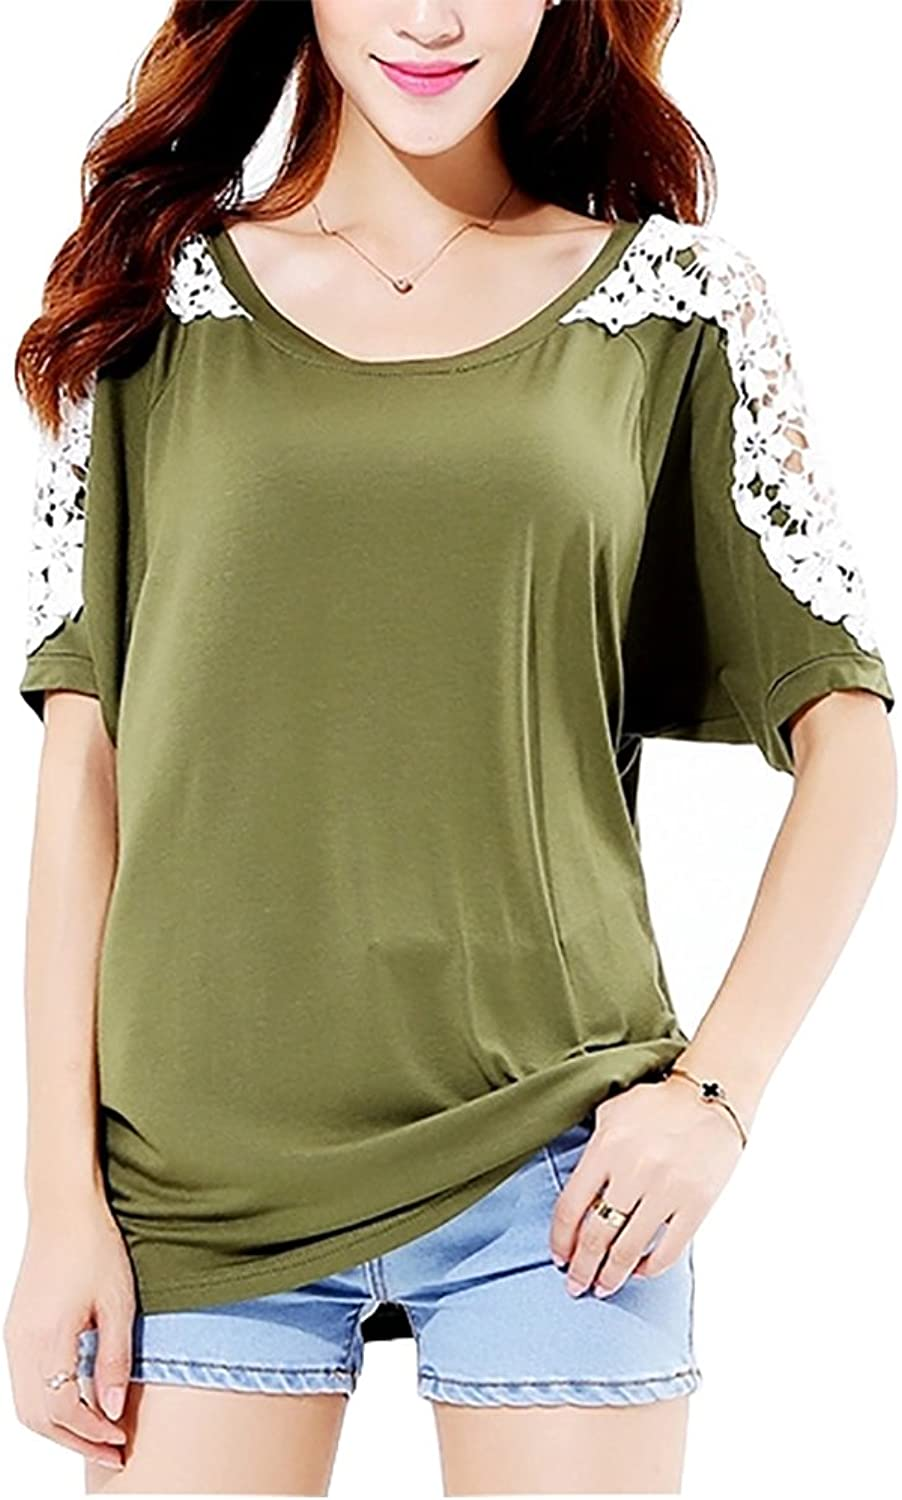 Demetory Womens Summer Short Sleeve TShirts Scoop Neck Lace Basic Tee Tops